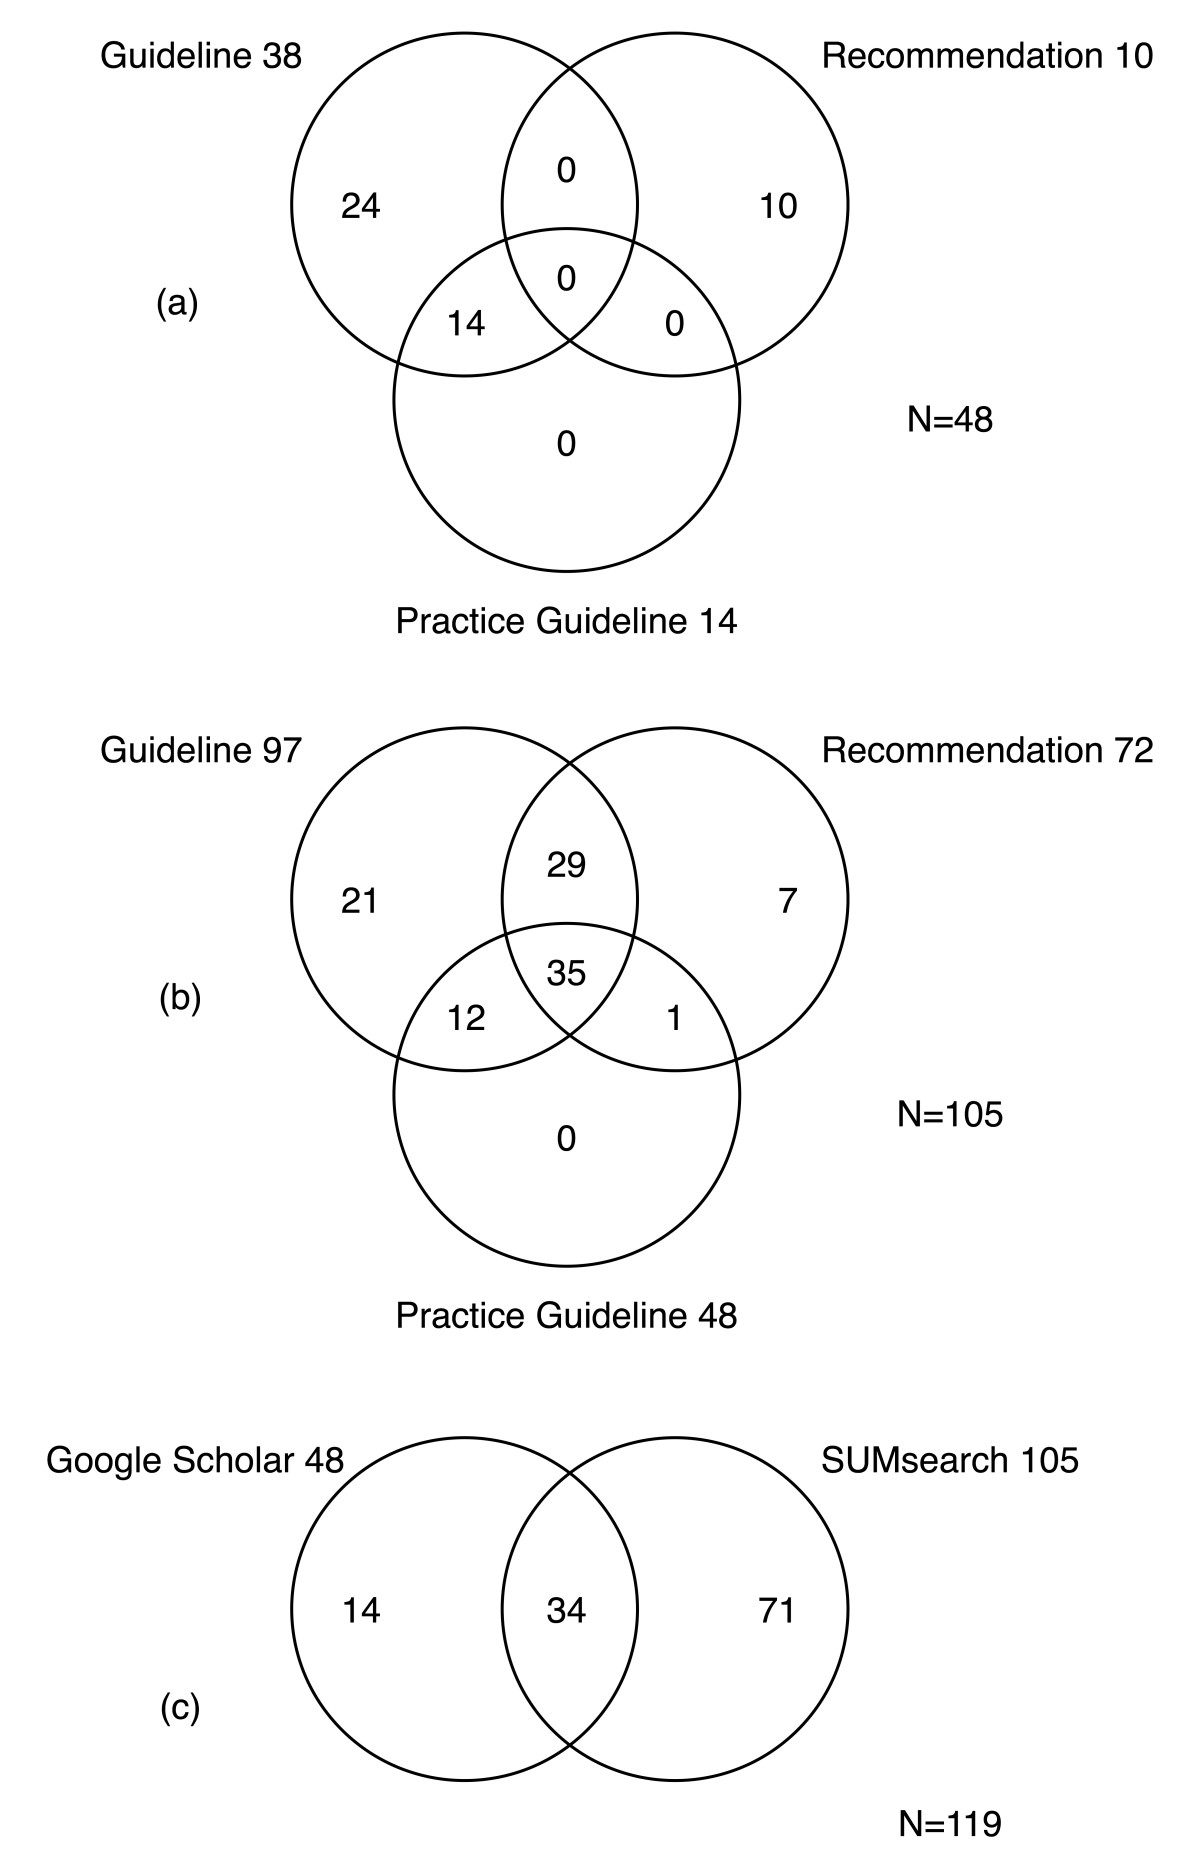 http://static-content.springer.com/image/art%3A10.1186%2F1471-2288-7-28/MediaObjects/12874_2006_Article_211_Fig2_HTML.jpg